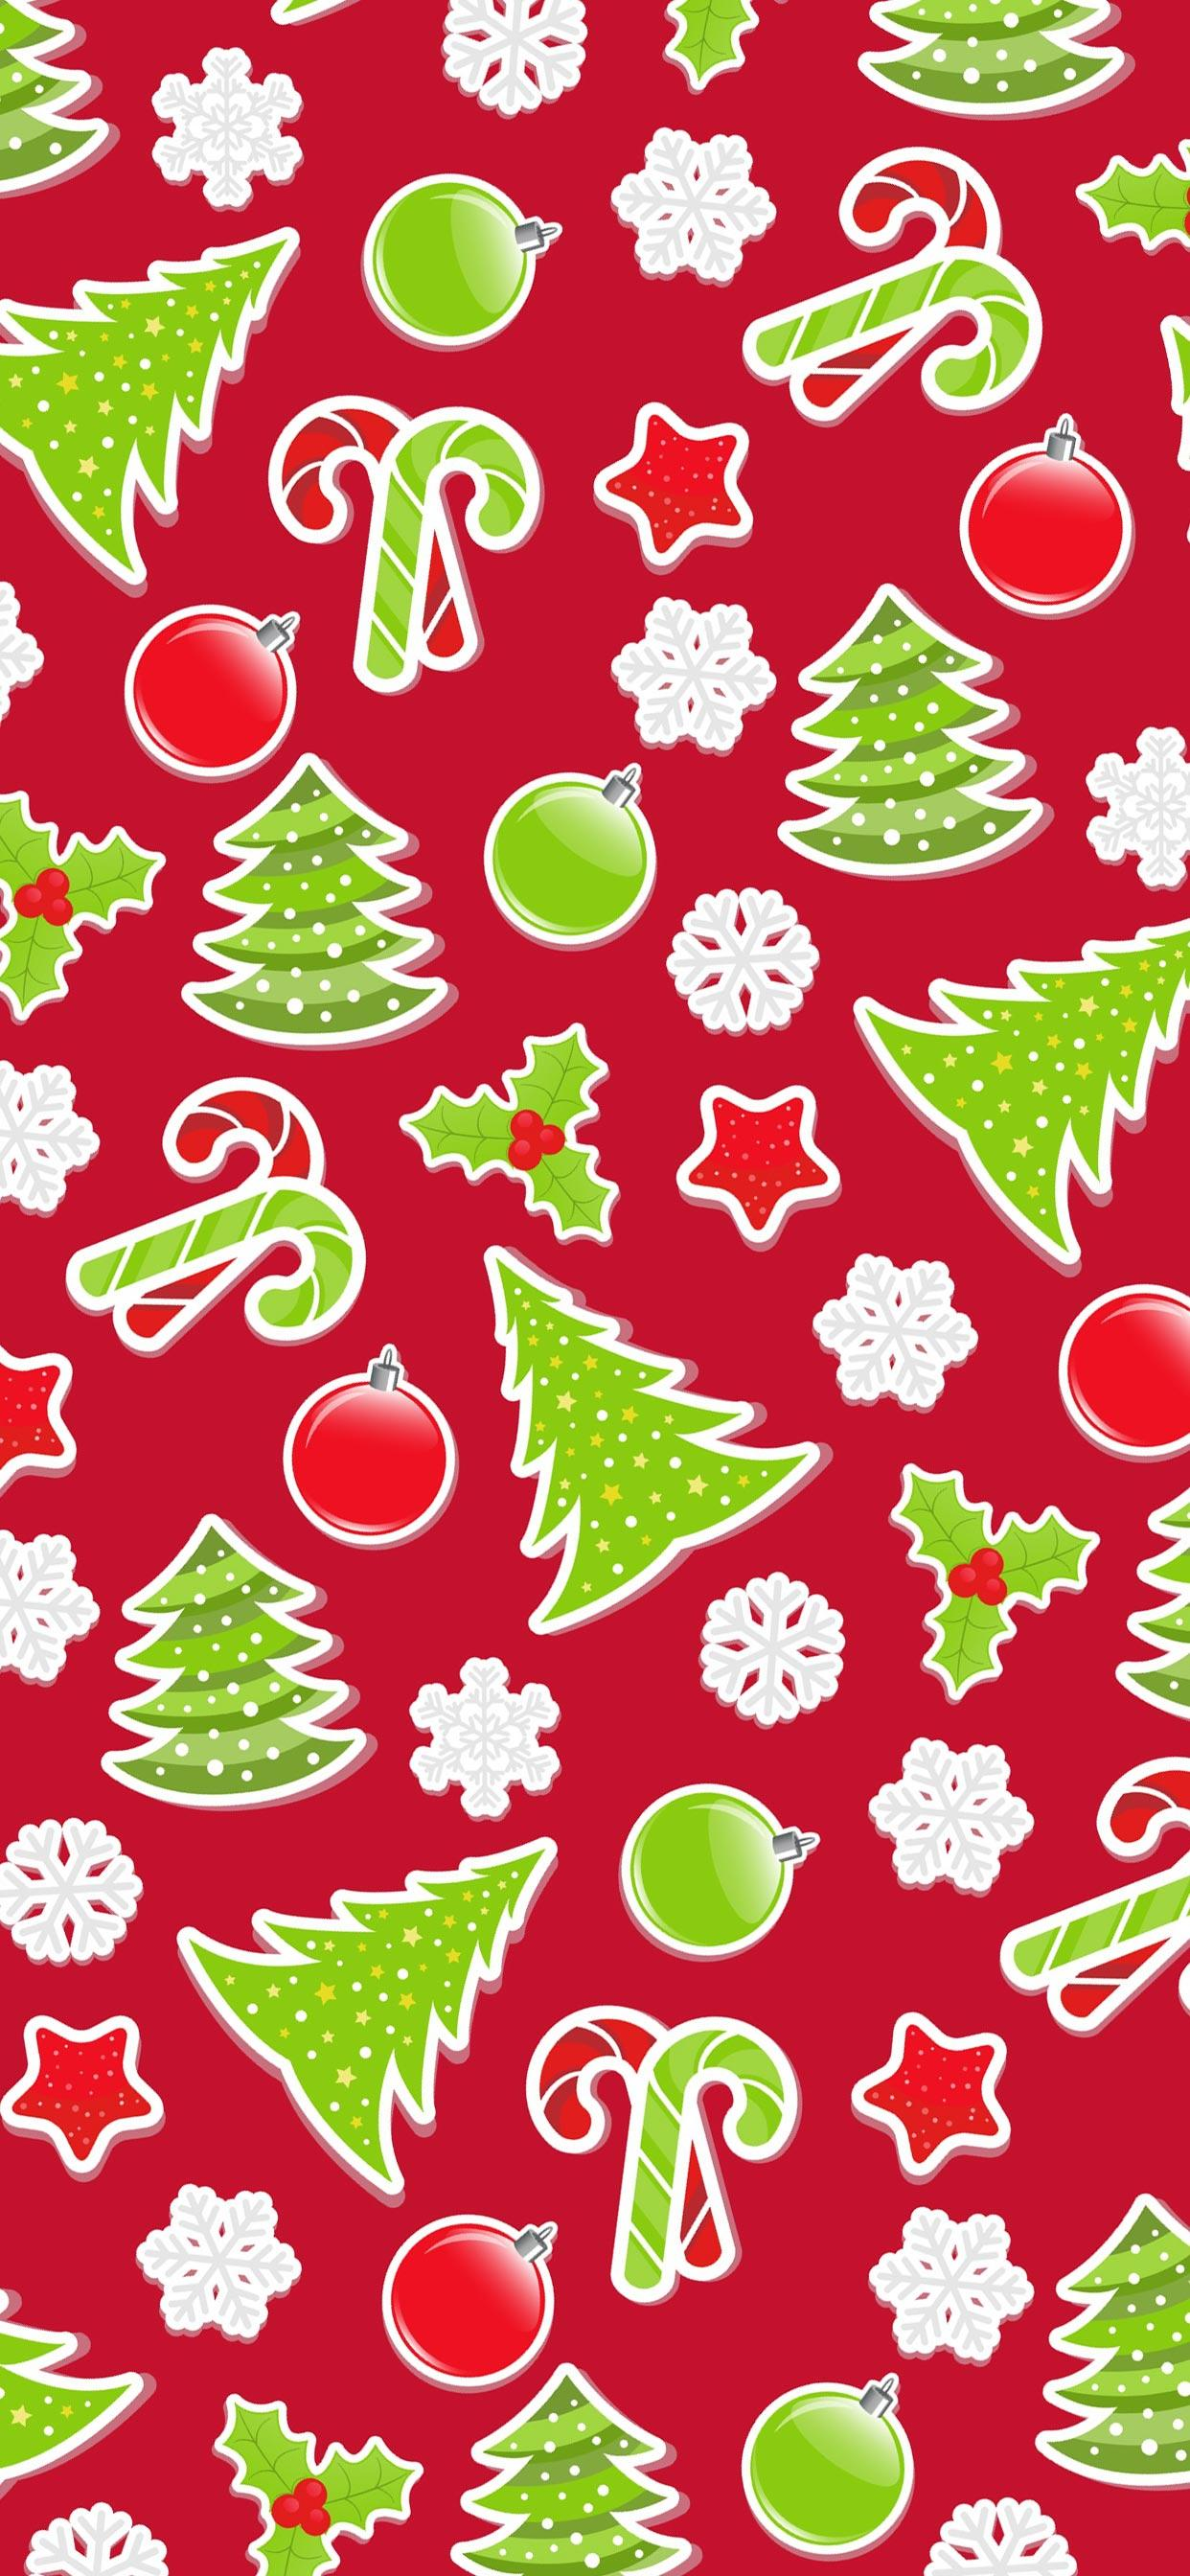 Christmas 2020 Phone Wallpapers Wallpaper Cave